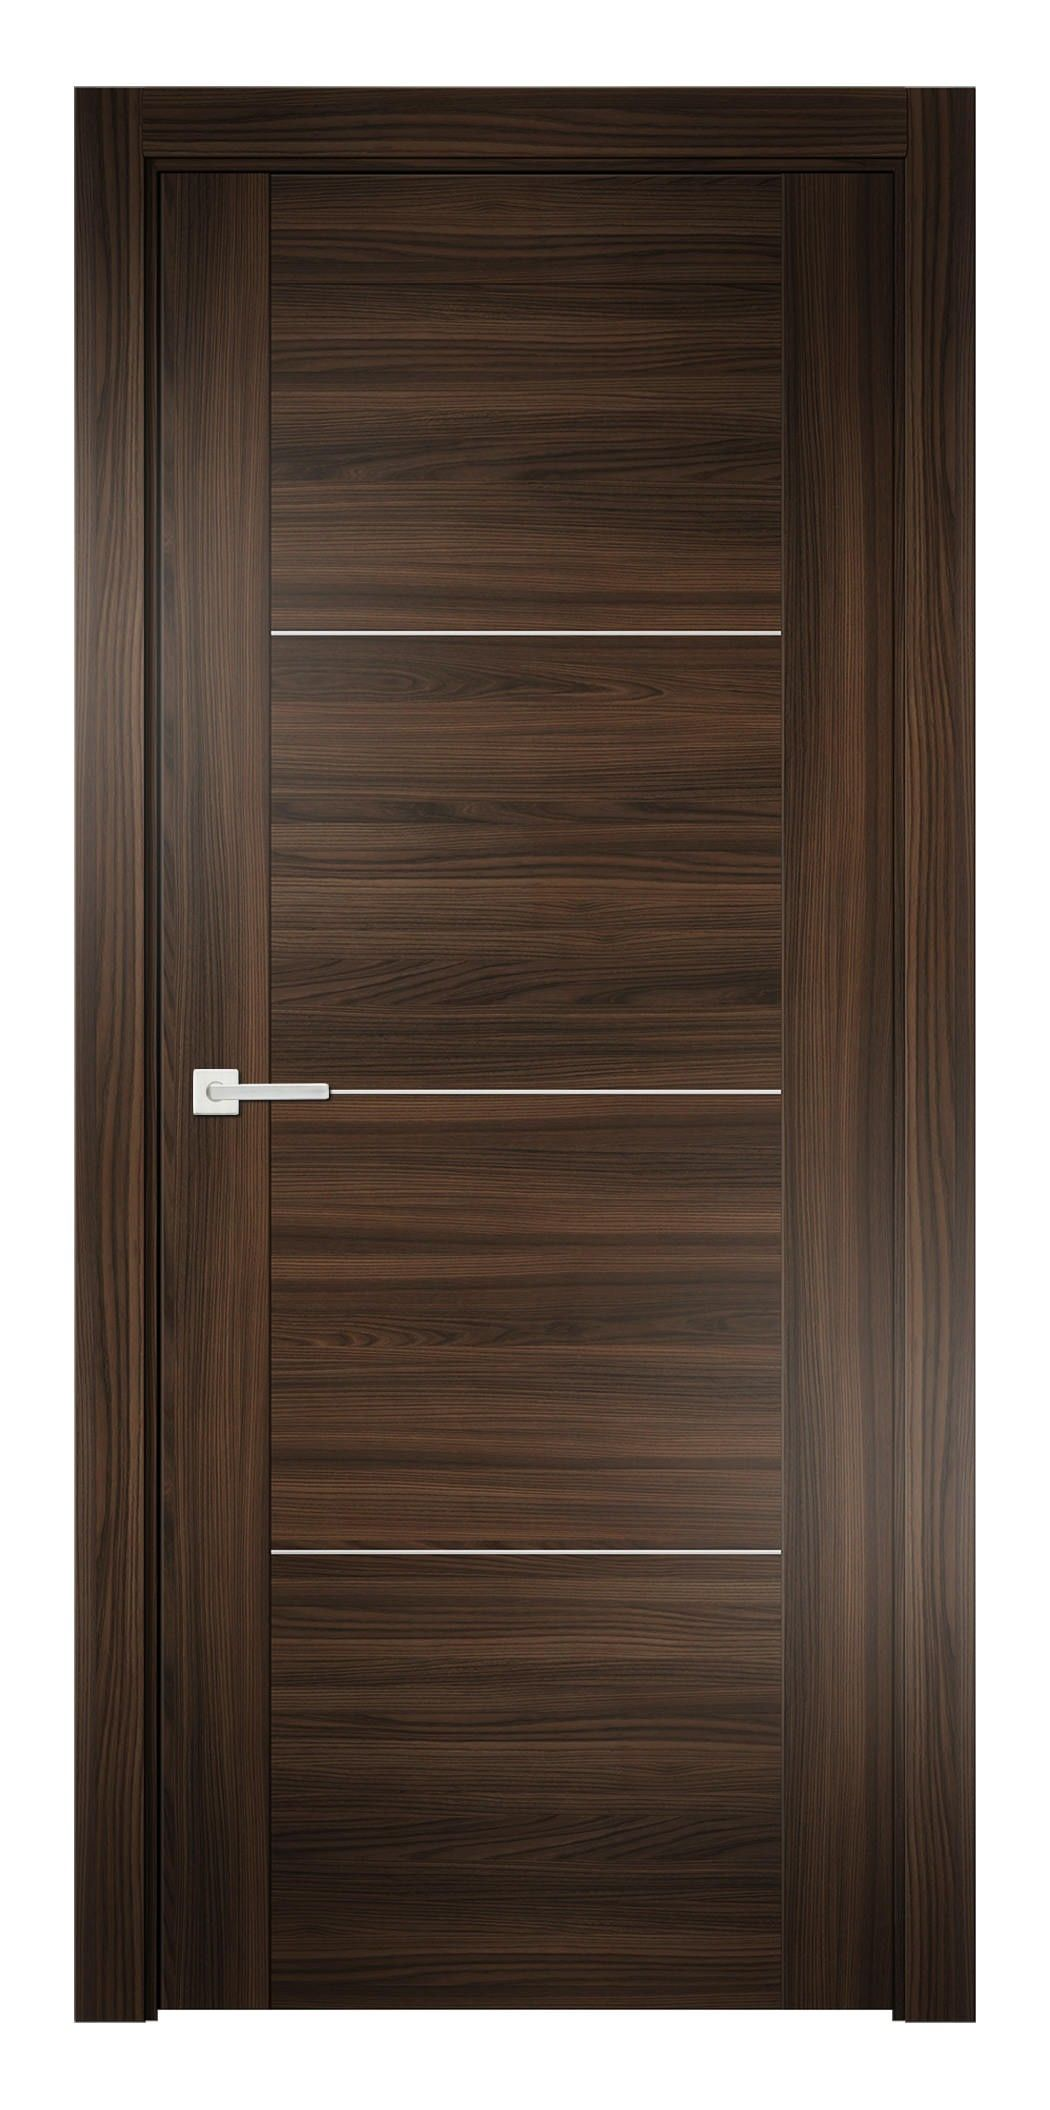 Sarto Prio Ns 7213 Interior Door Is Uniquely Designed To